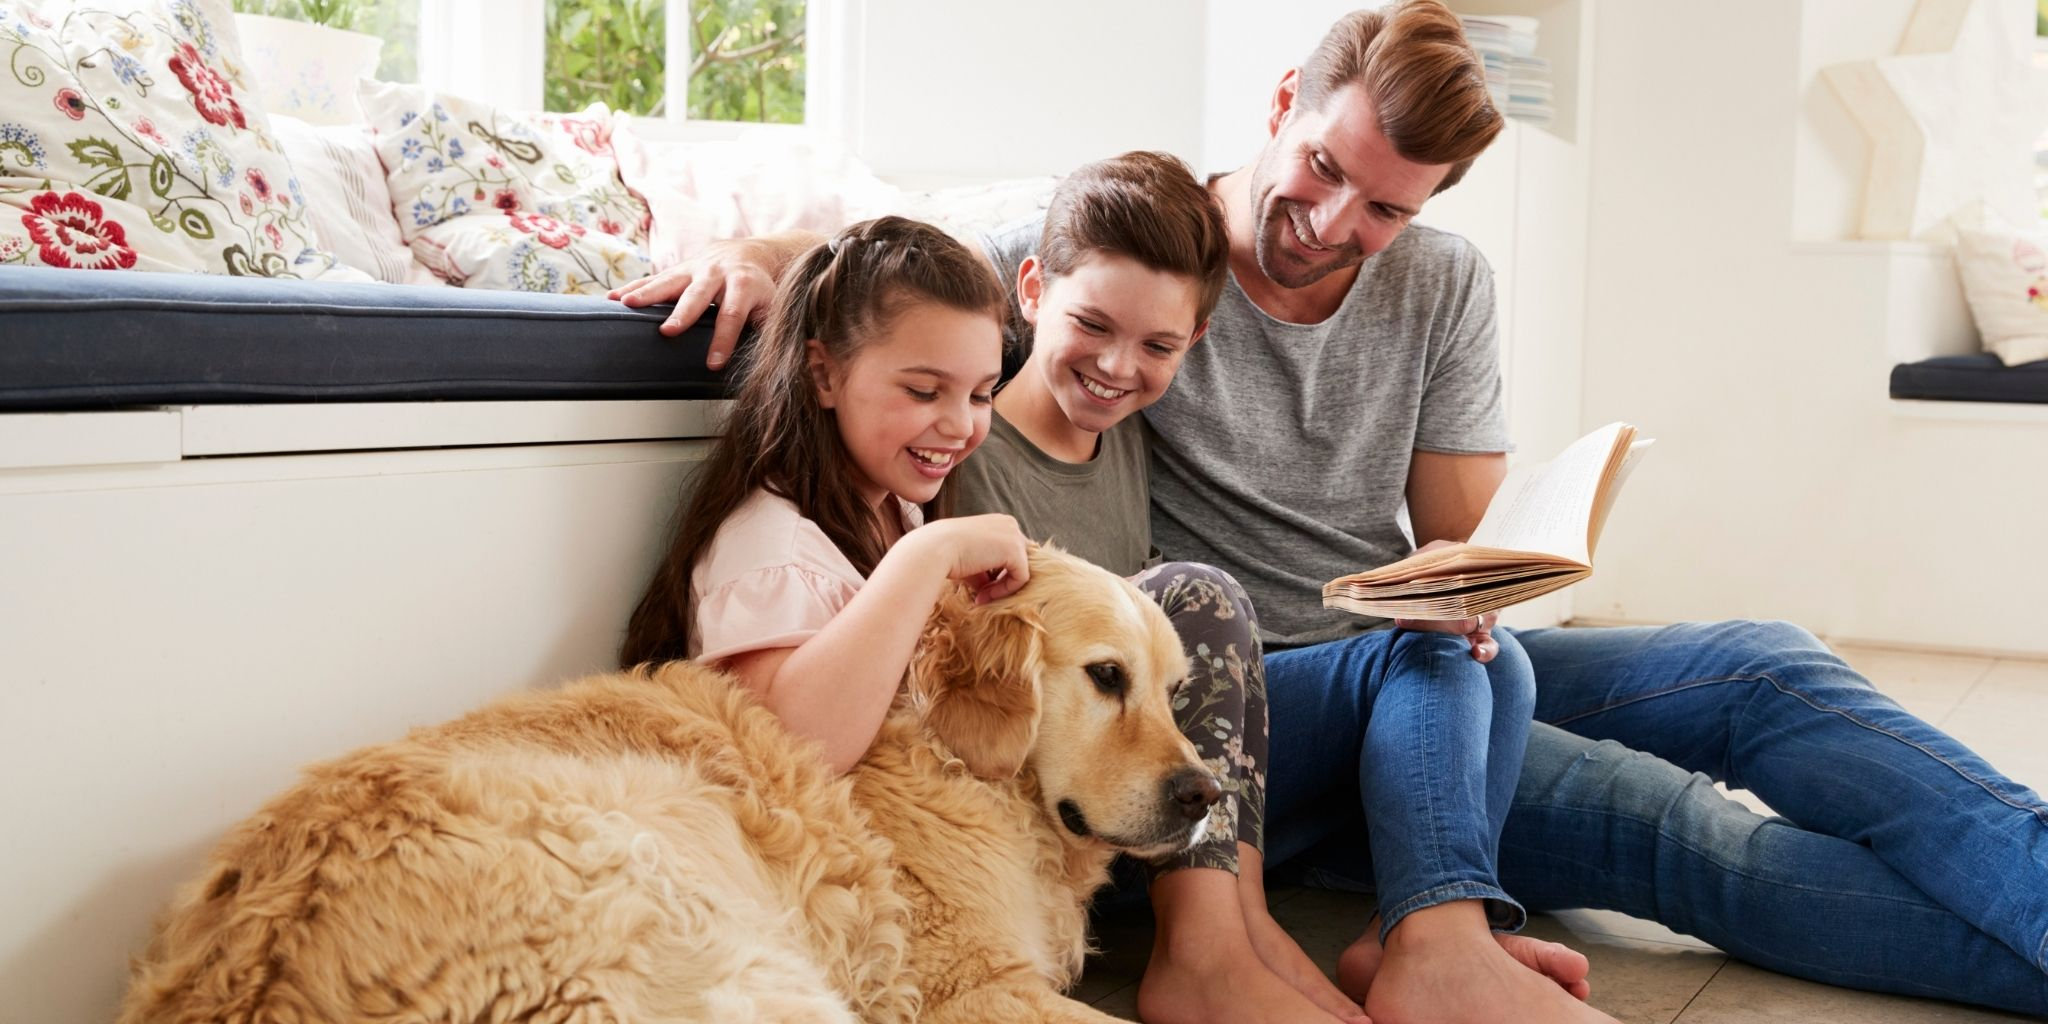 Find the best pet for your family - The Test